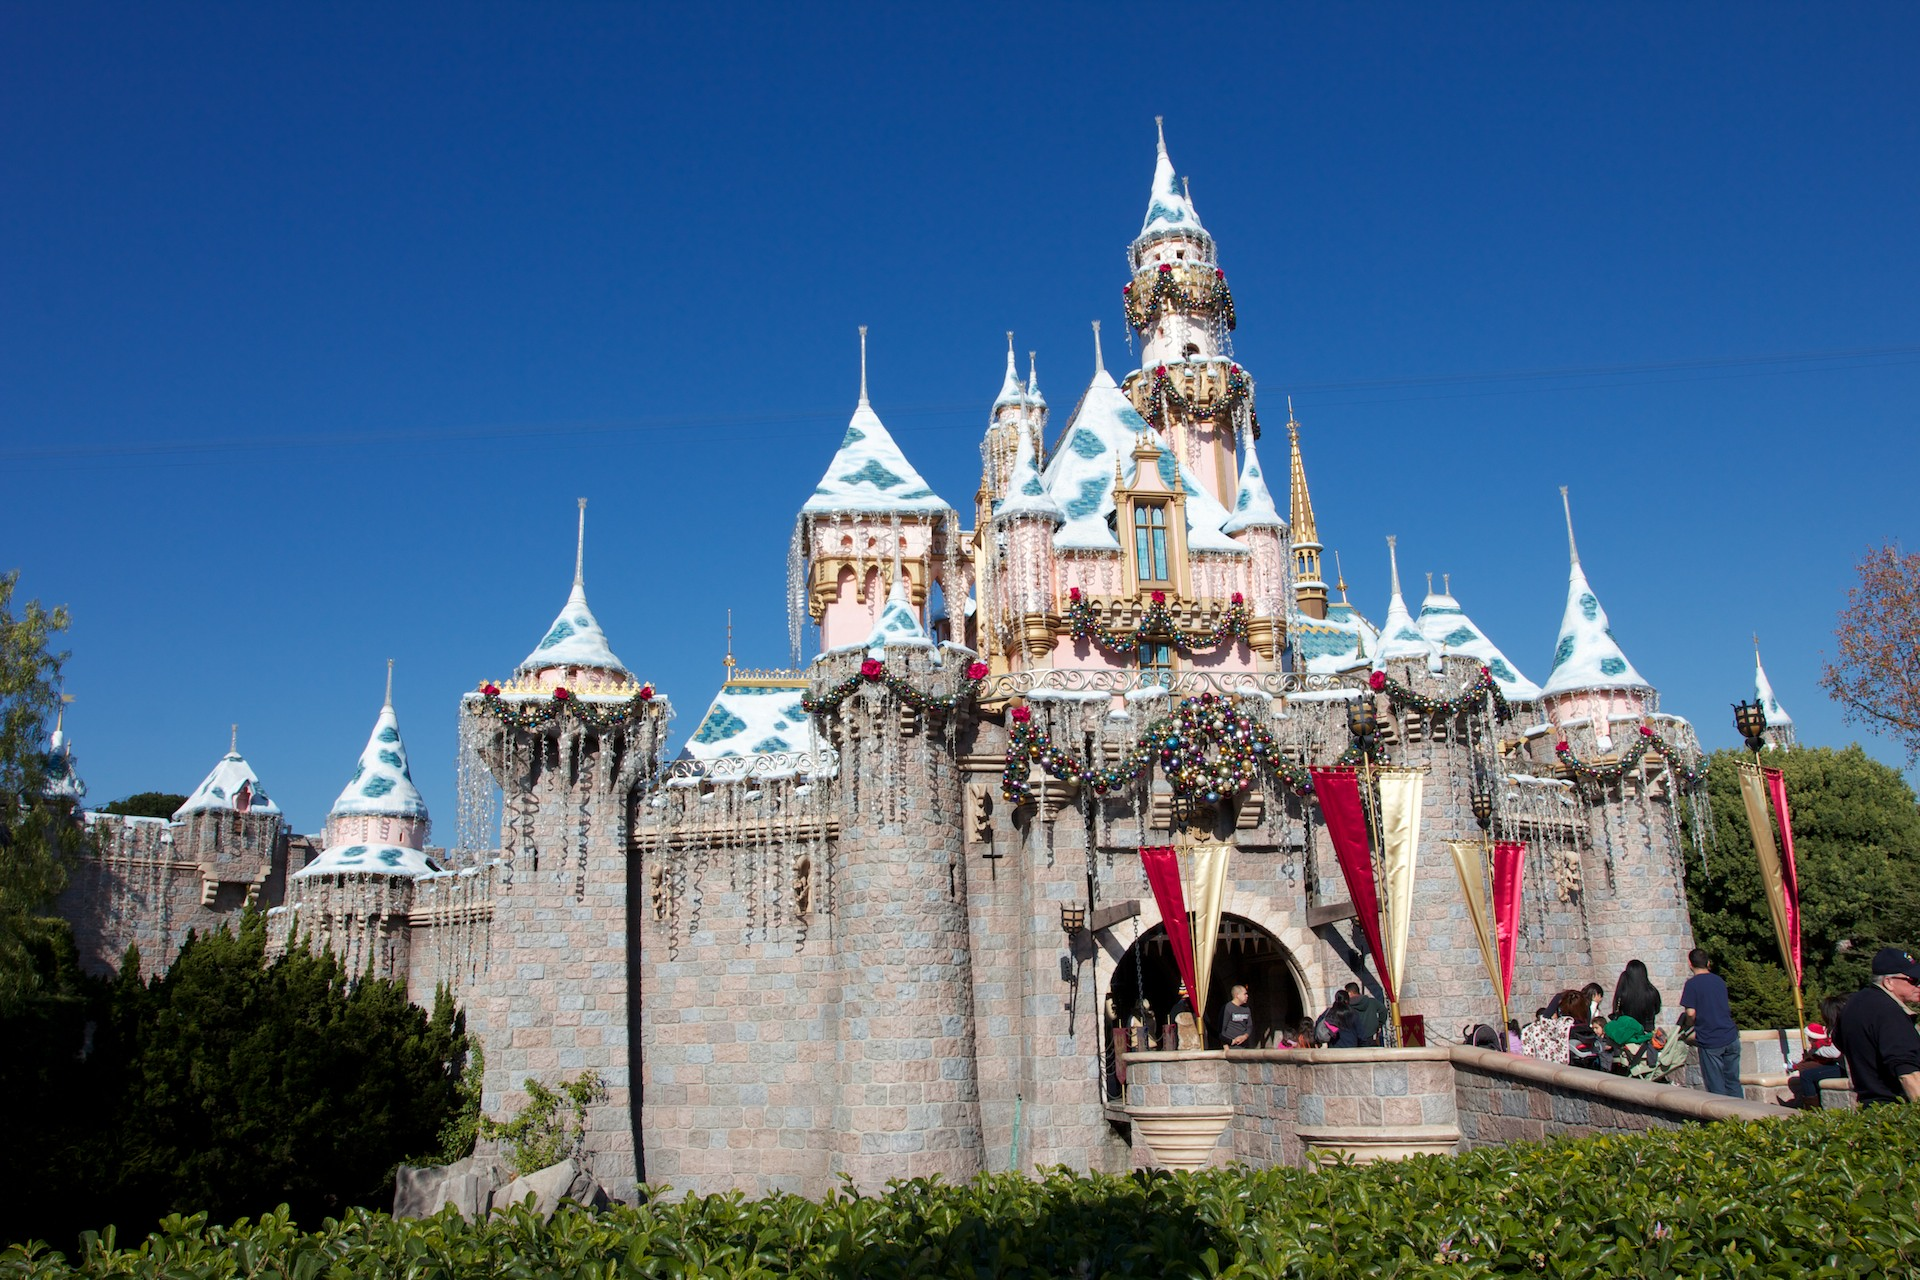 Christmas at Disneyland Sleeping Beauty Castle Desktop Wallpaper 1920x1280